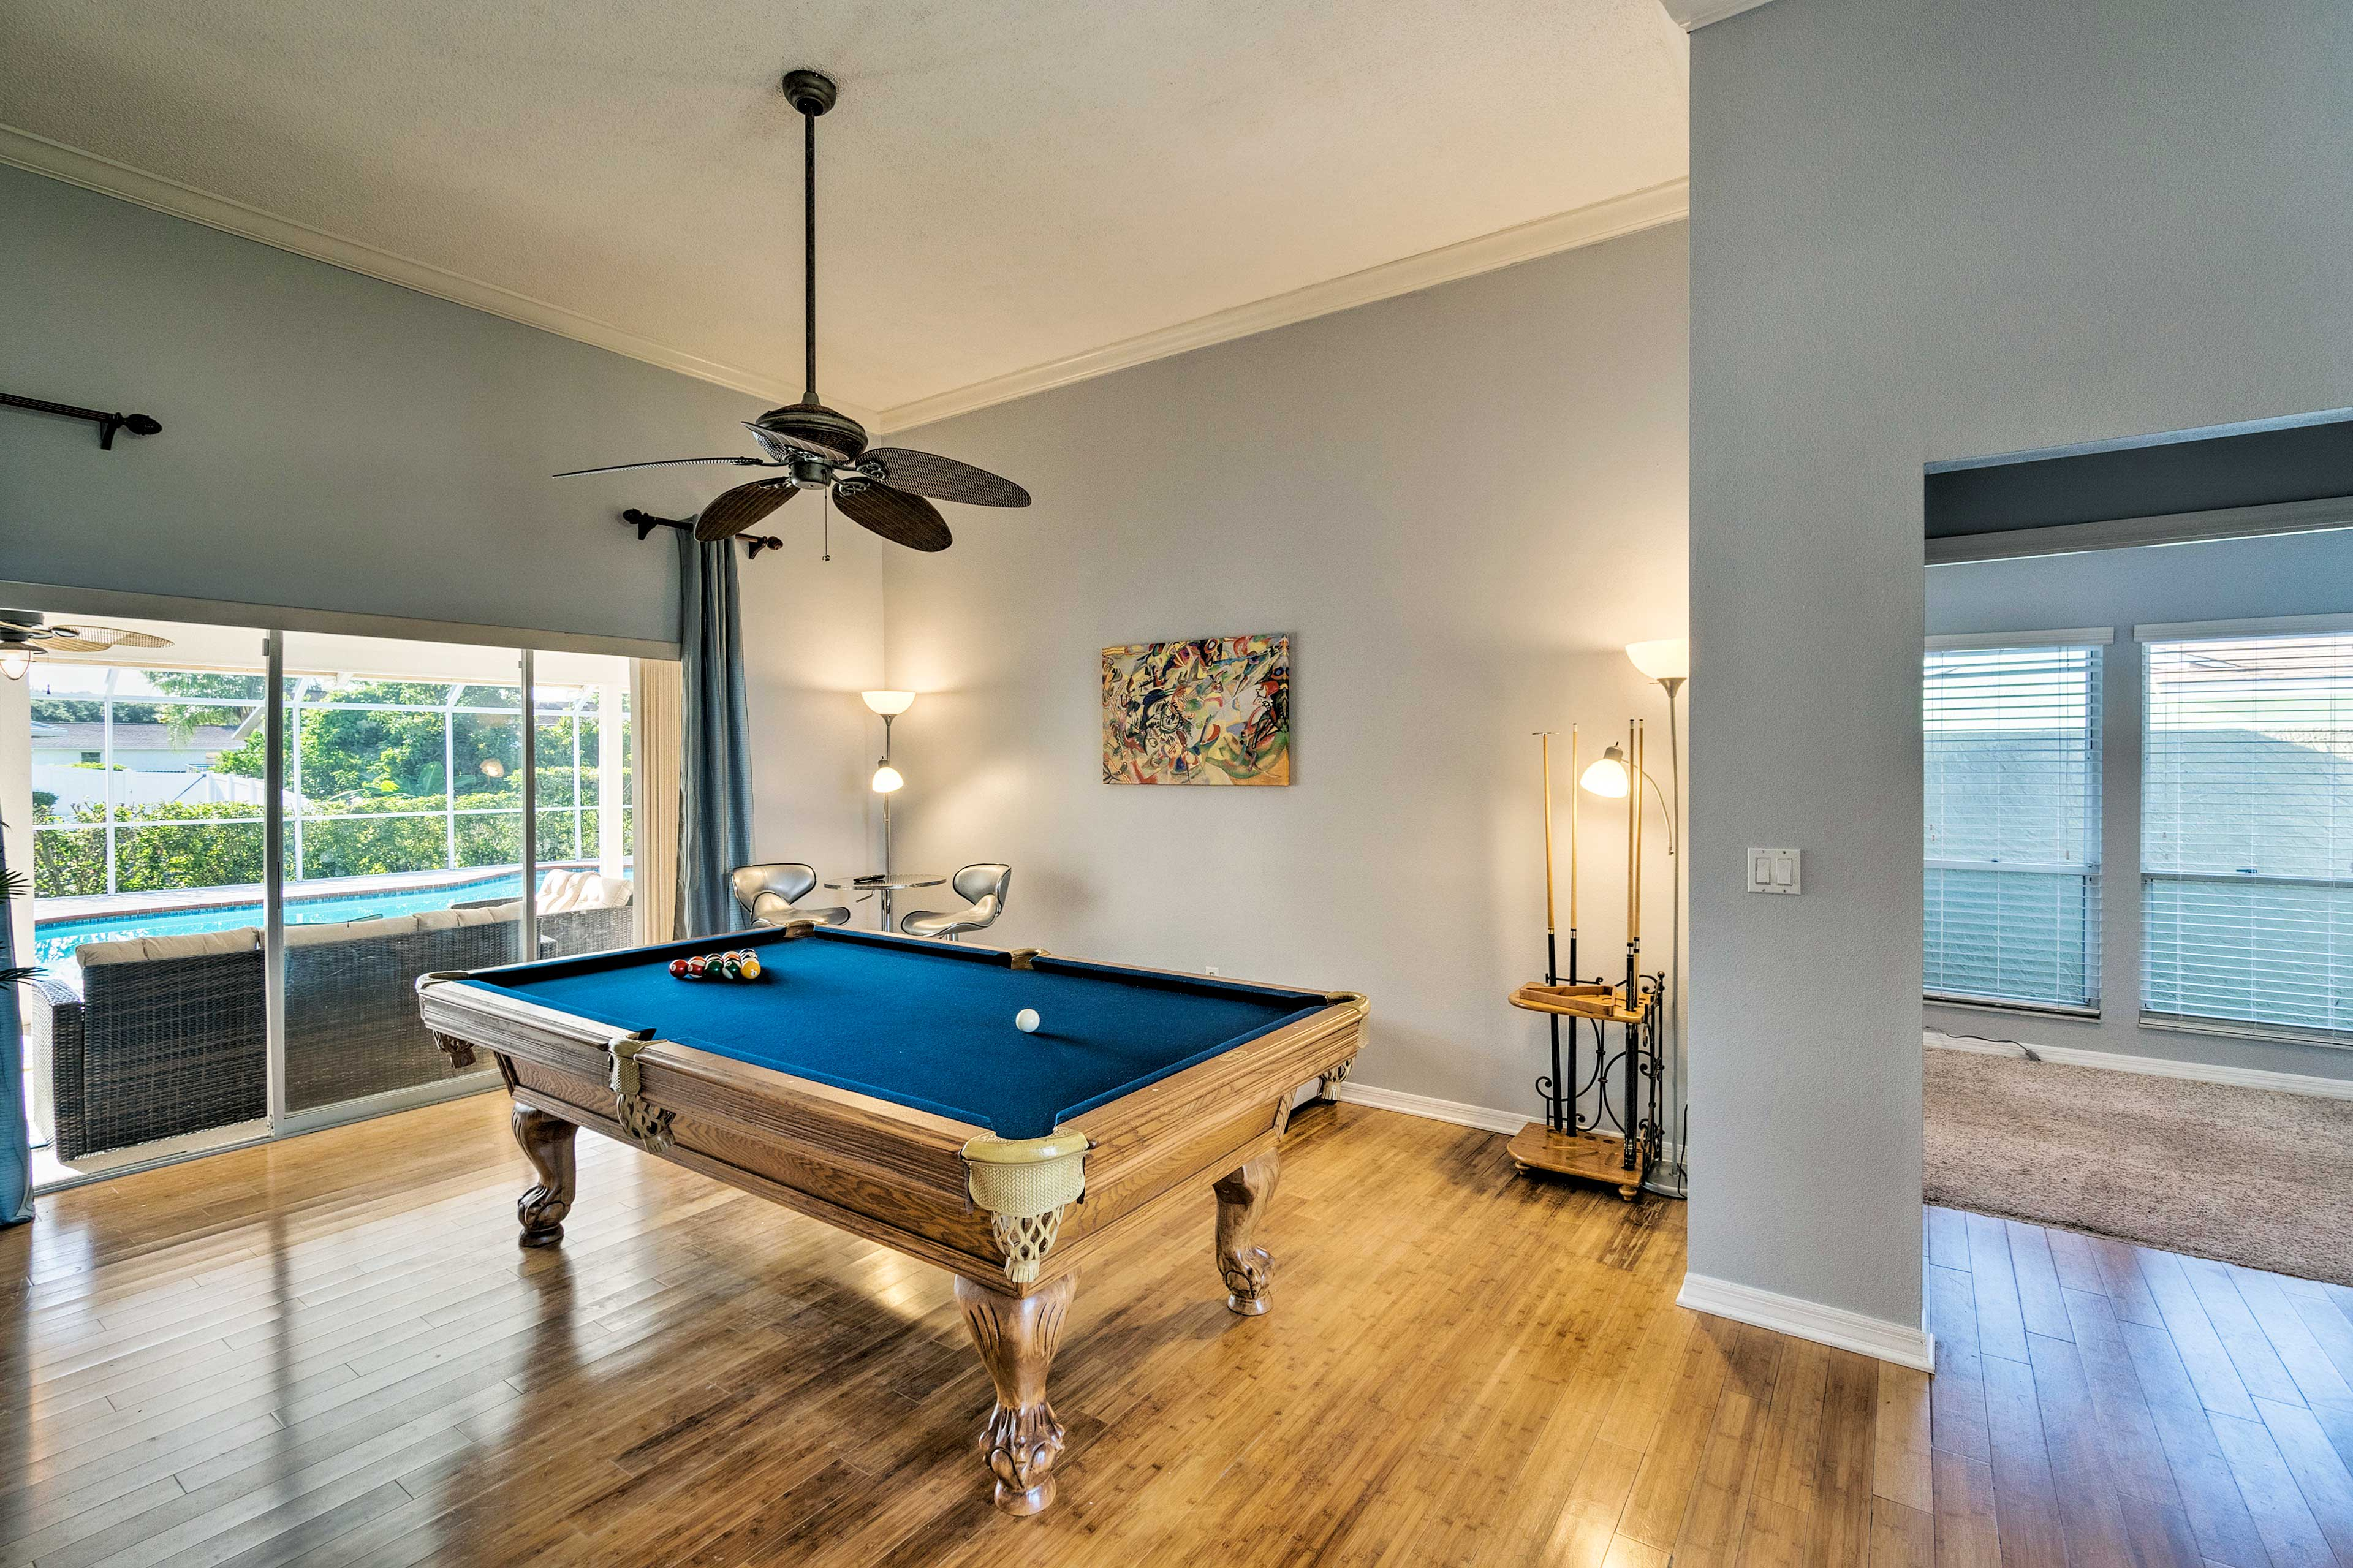 Pool sharks will love playing at the Billiards table.